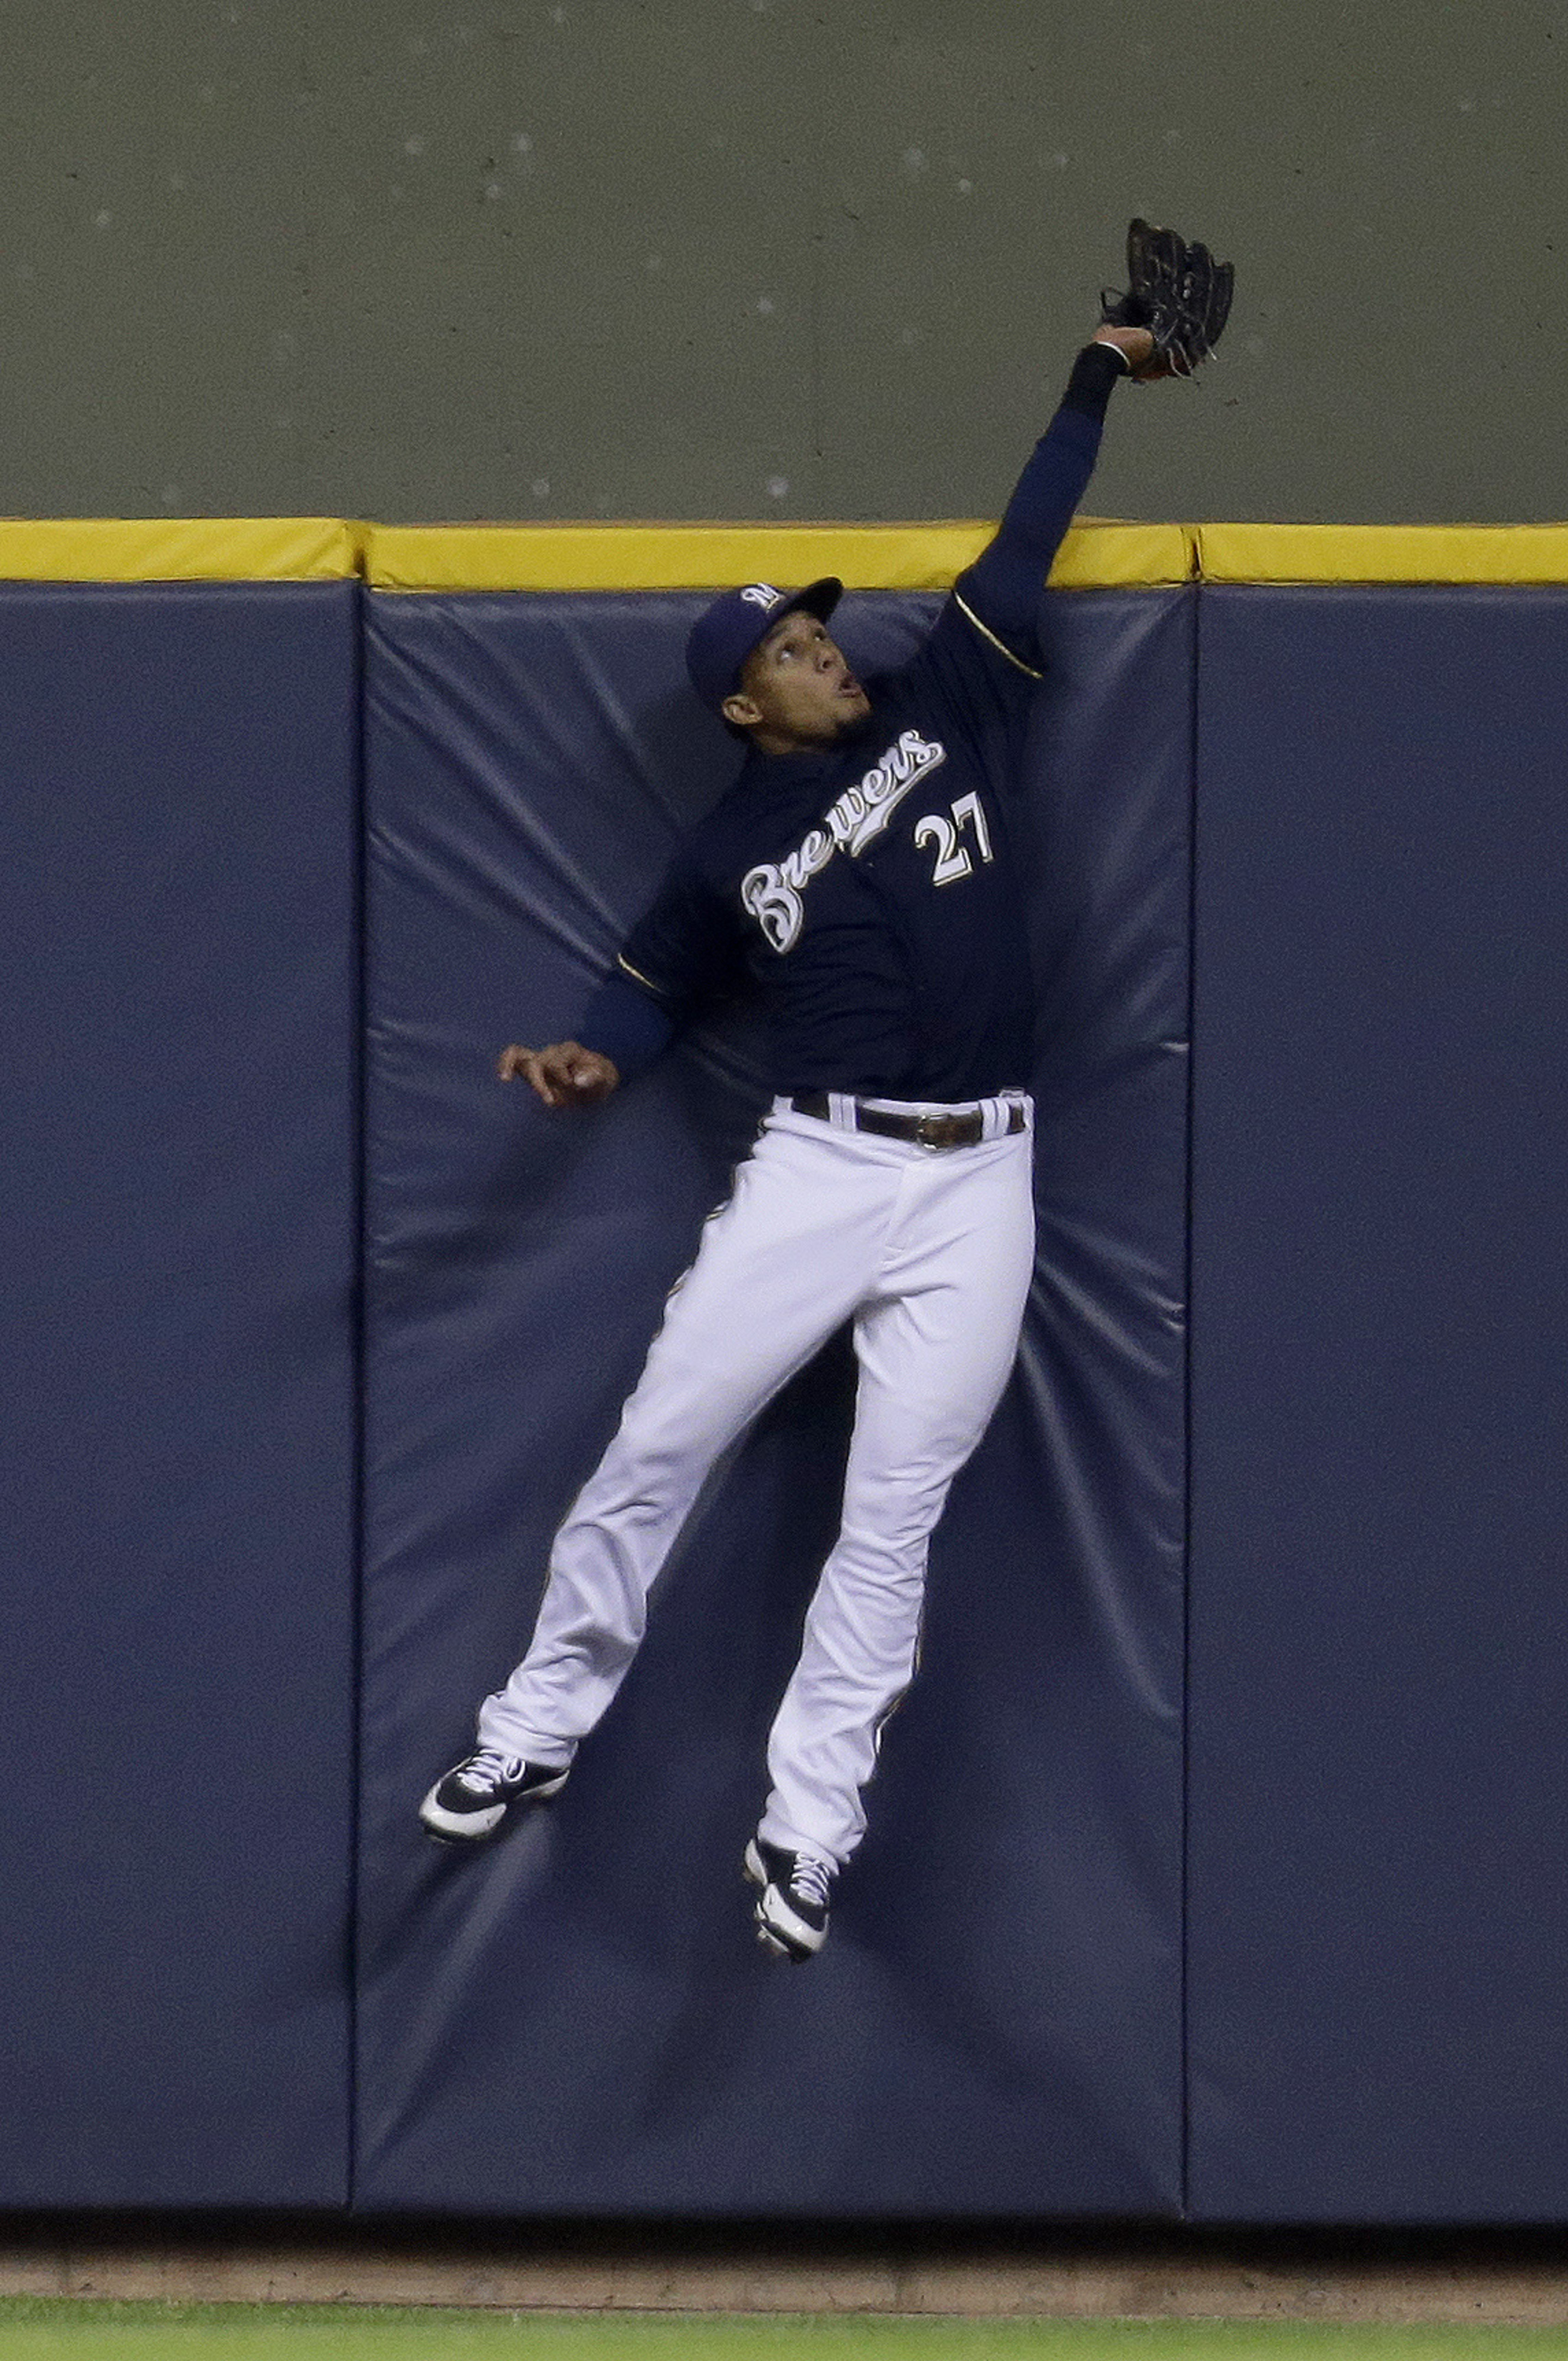 Carlos Gomez had a great year, and his position matters too.